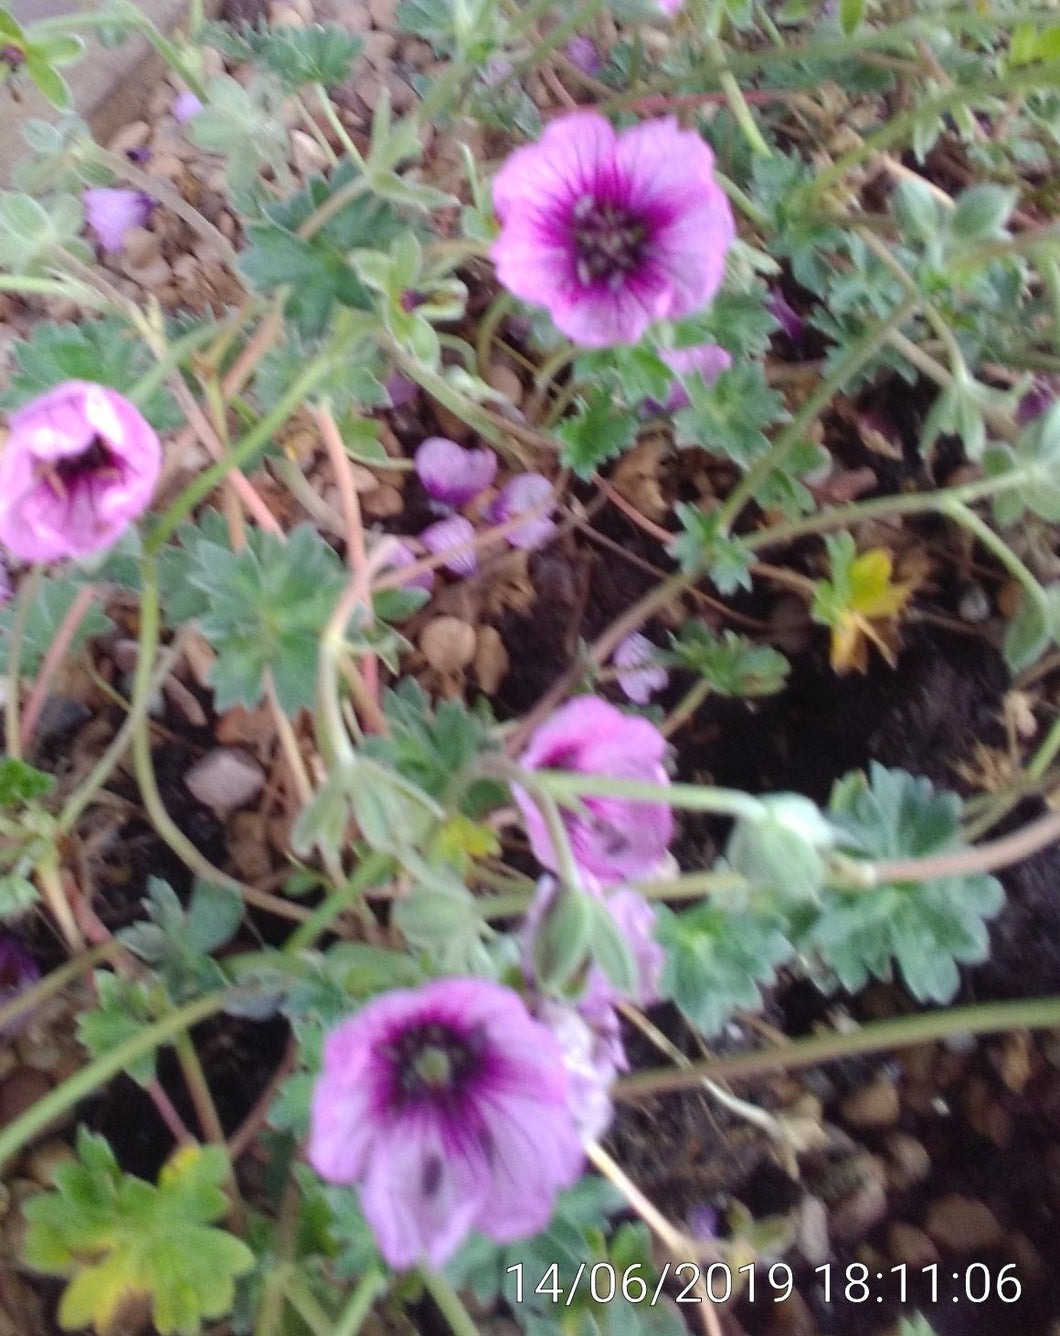 Geranium cinereum 'Thumbling Hearts' PBR